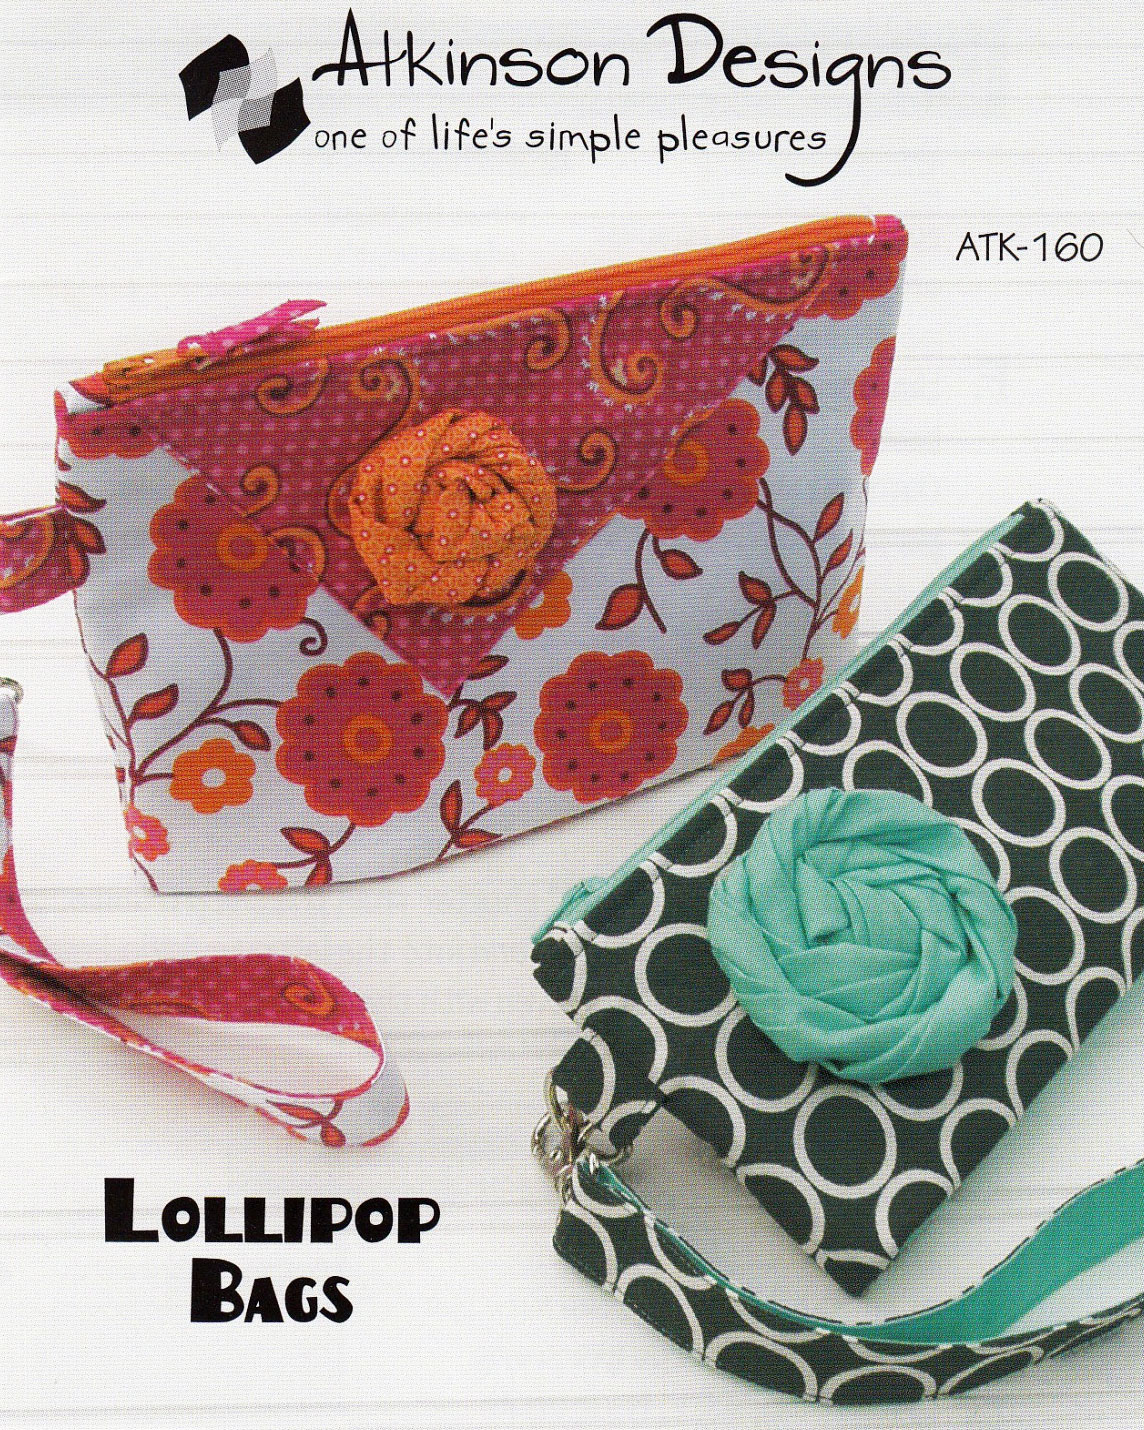 Lollipop-Bags-sewing-pattern-Atkinson-Designs-front